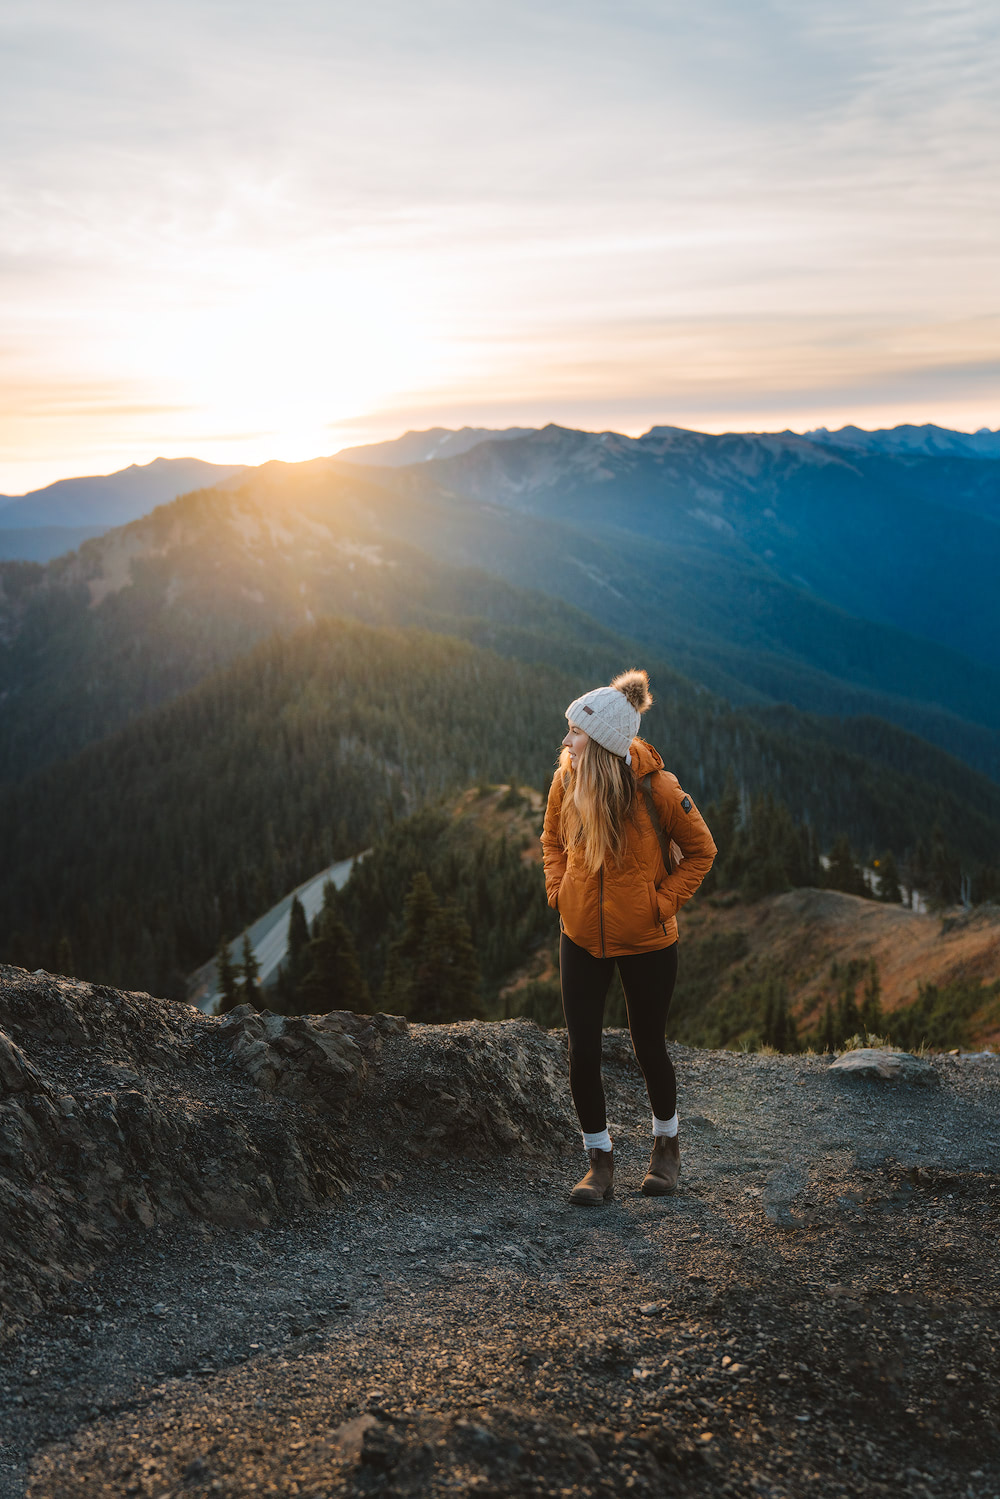 Olympic National Park Adventure Getaway 24 Hour Itinerary from Seattle Renee Roaming Hurricane Ridge Sunrise 3